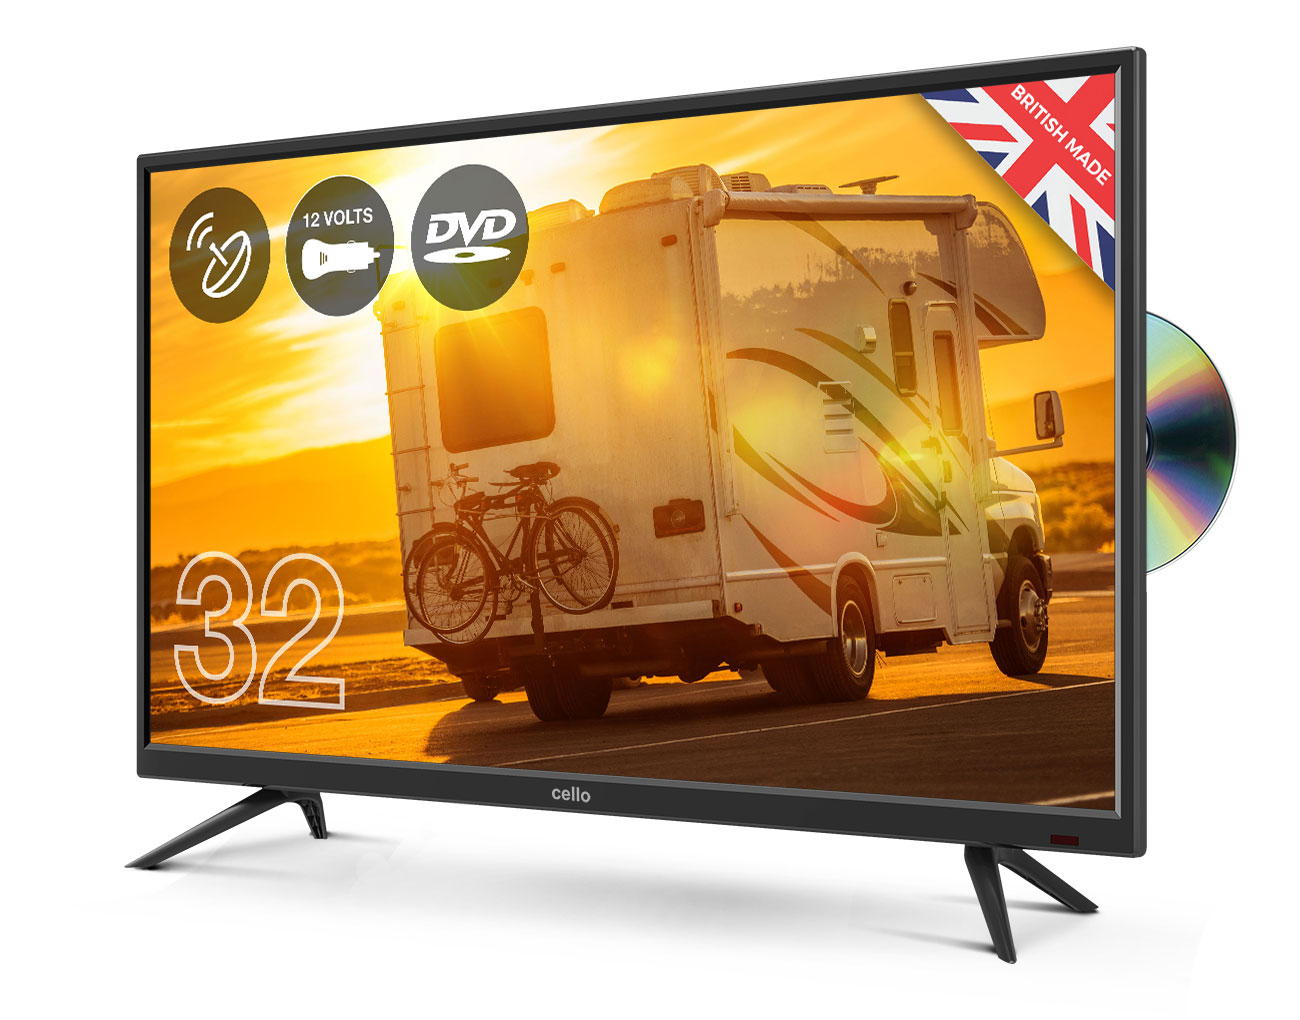 32 Traveller Tv With Built In Dvd Player And Satellite Tuner Cello Electronics Uk Ltd